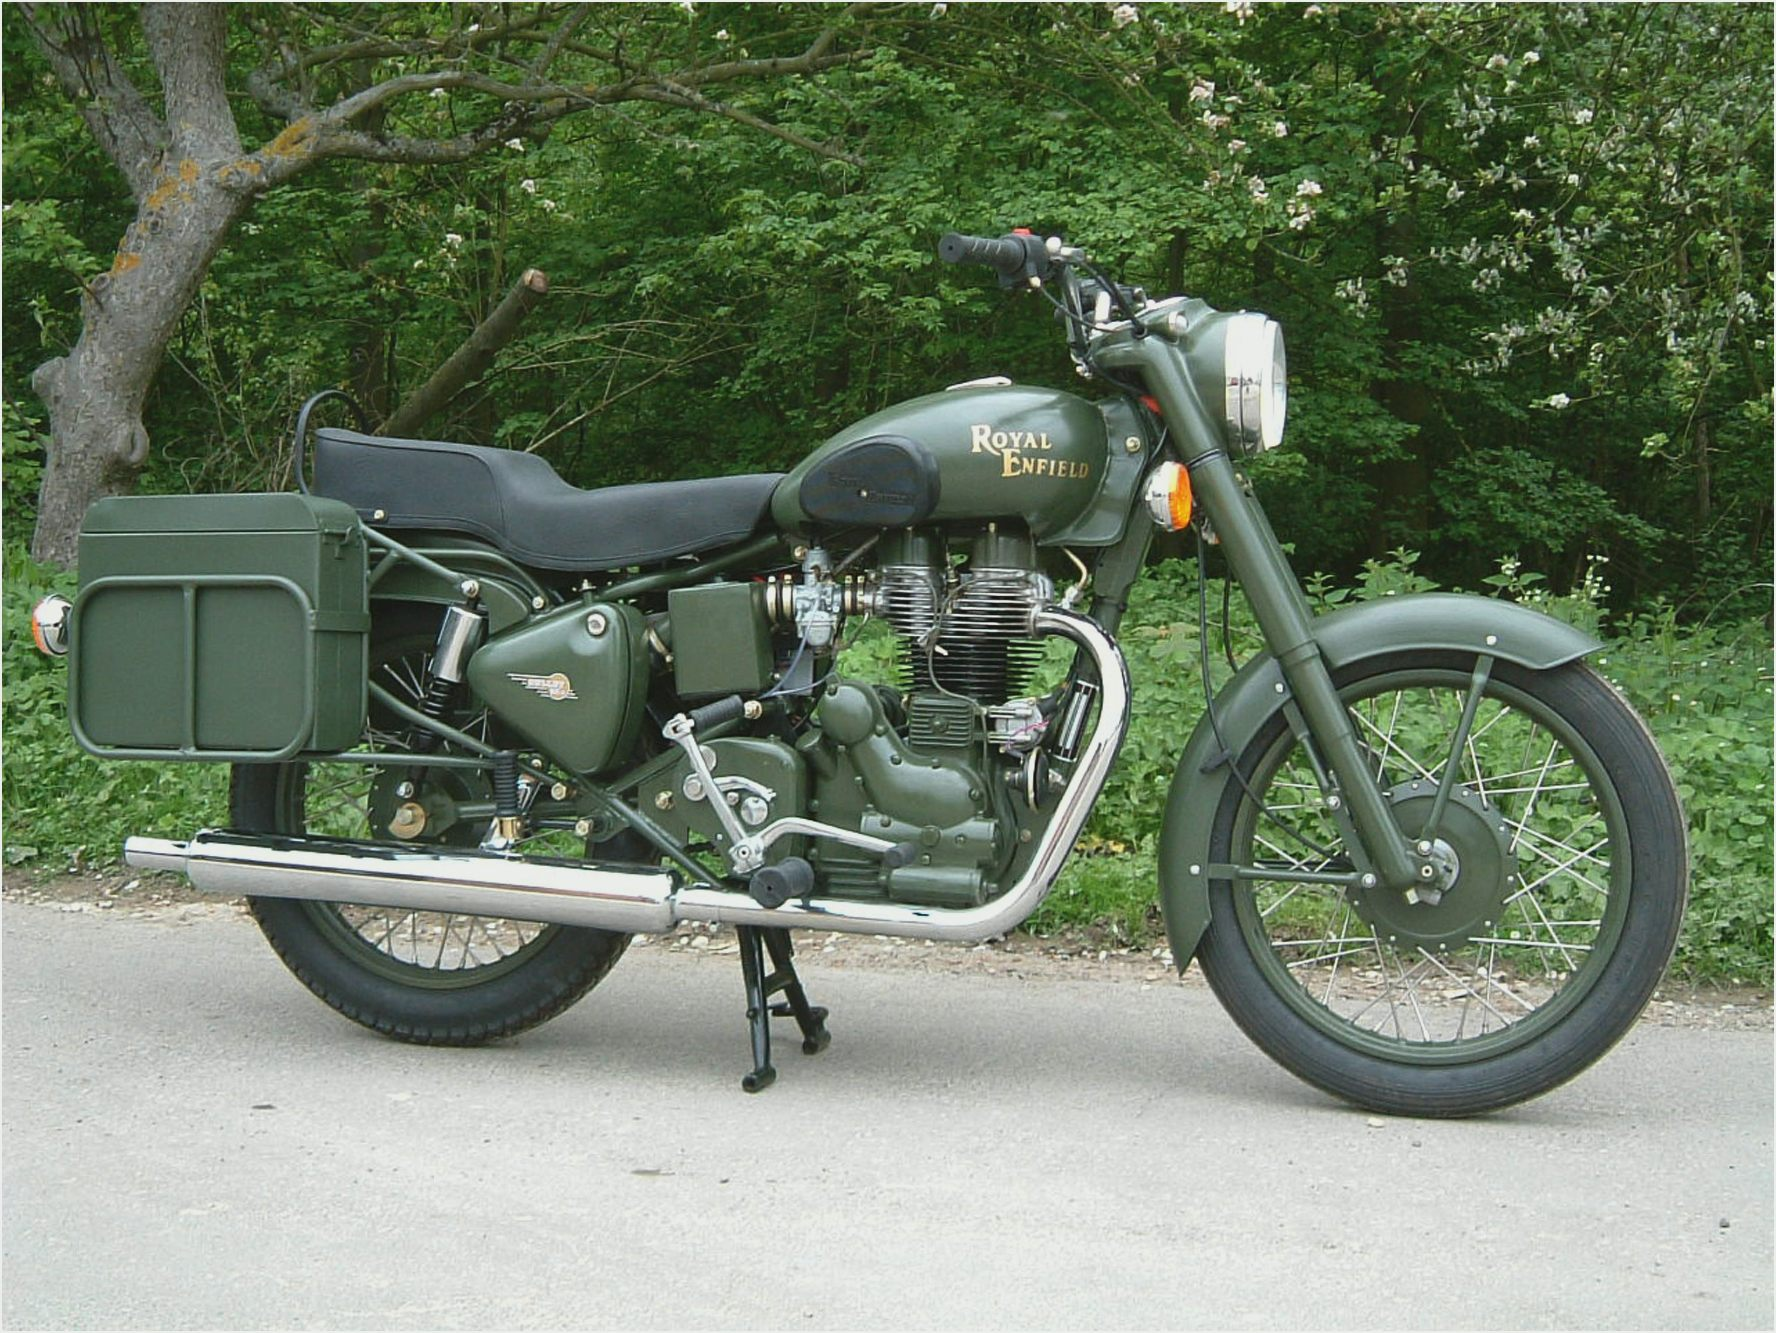 Royal Enfield Bullet 500 Army 1997 images #158638